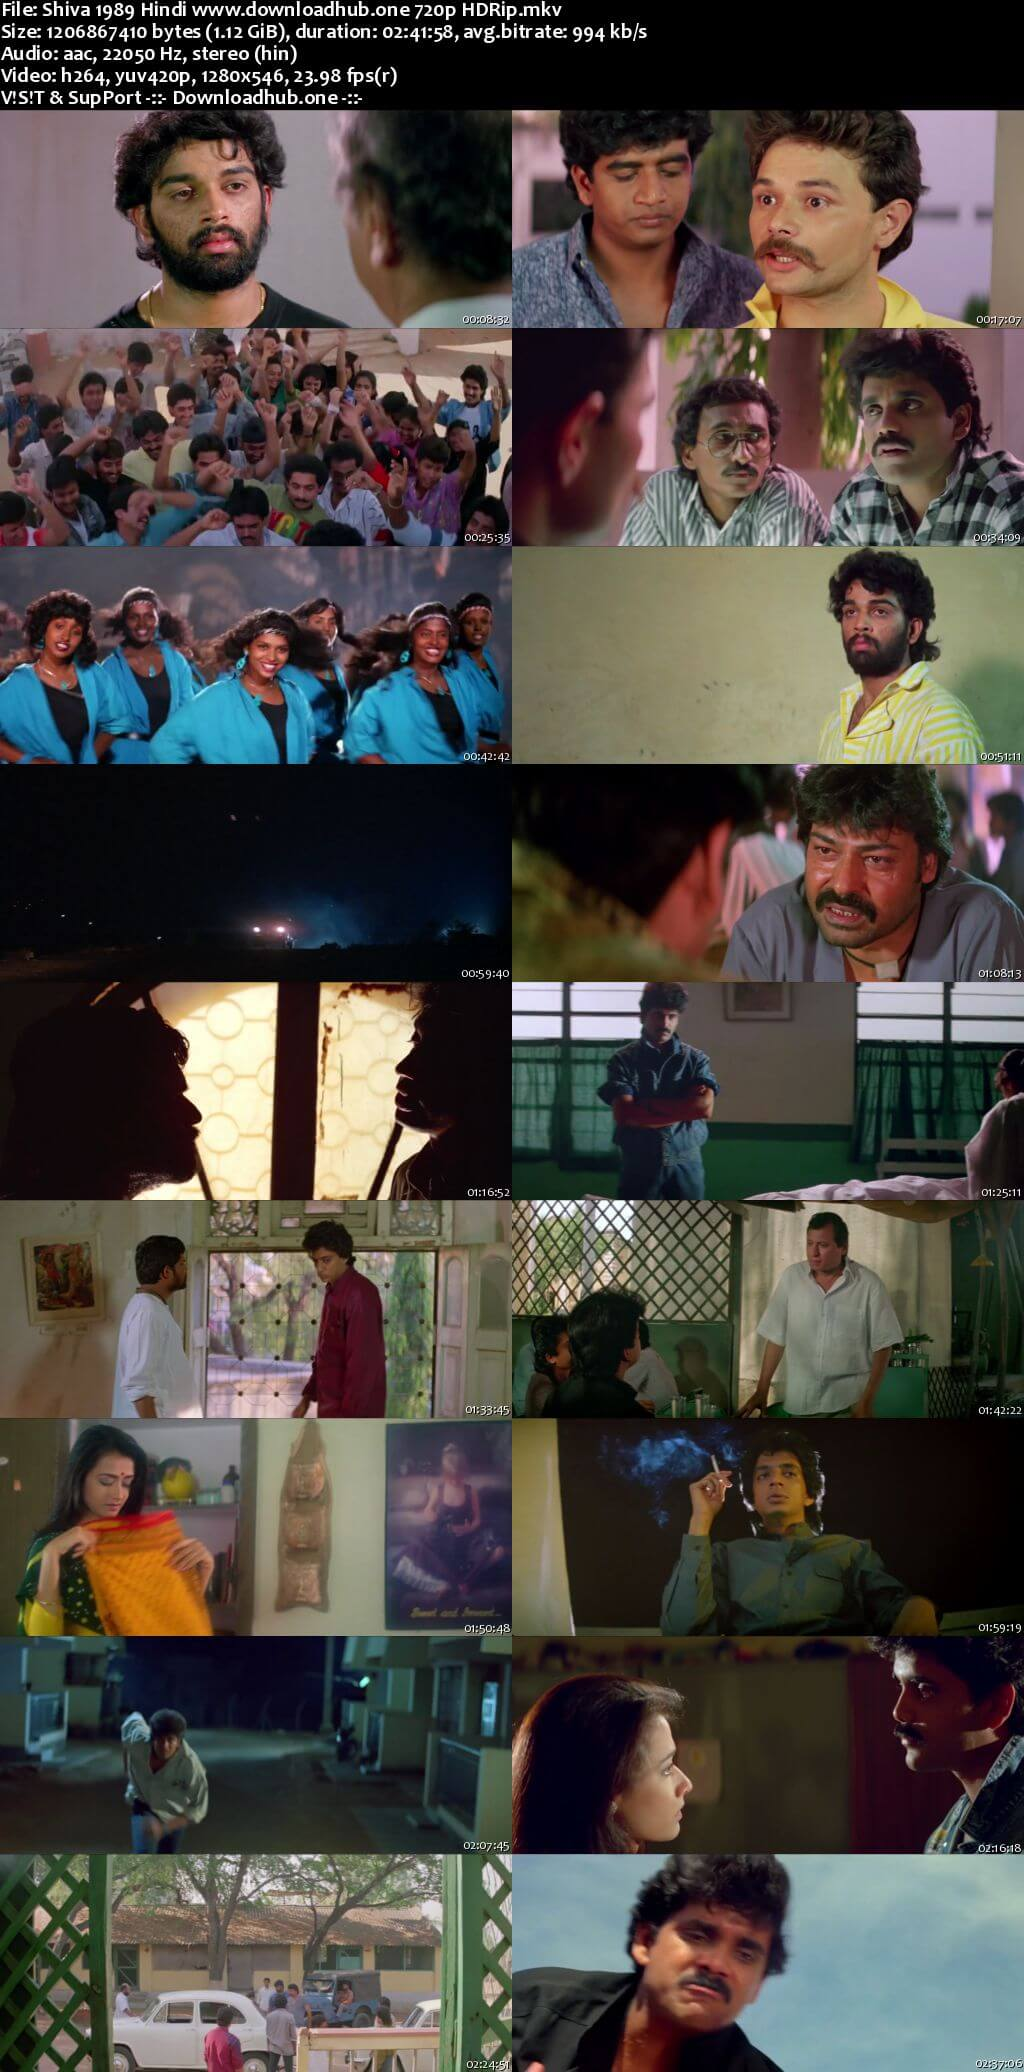 Shiva 1989 Hindi 720p HDRip x264